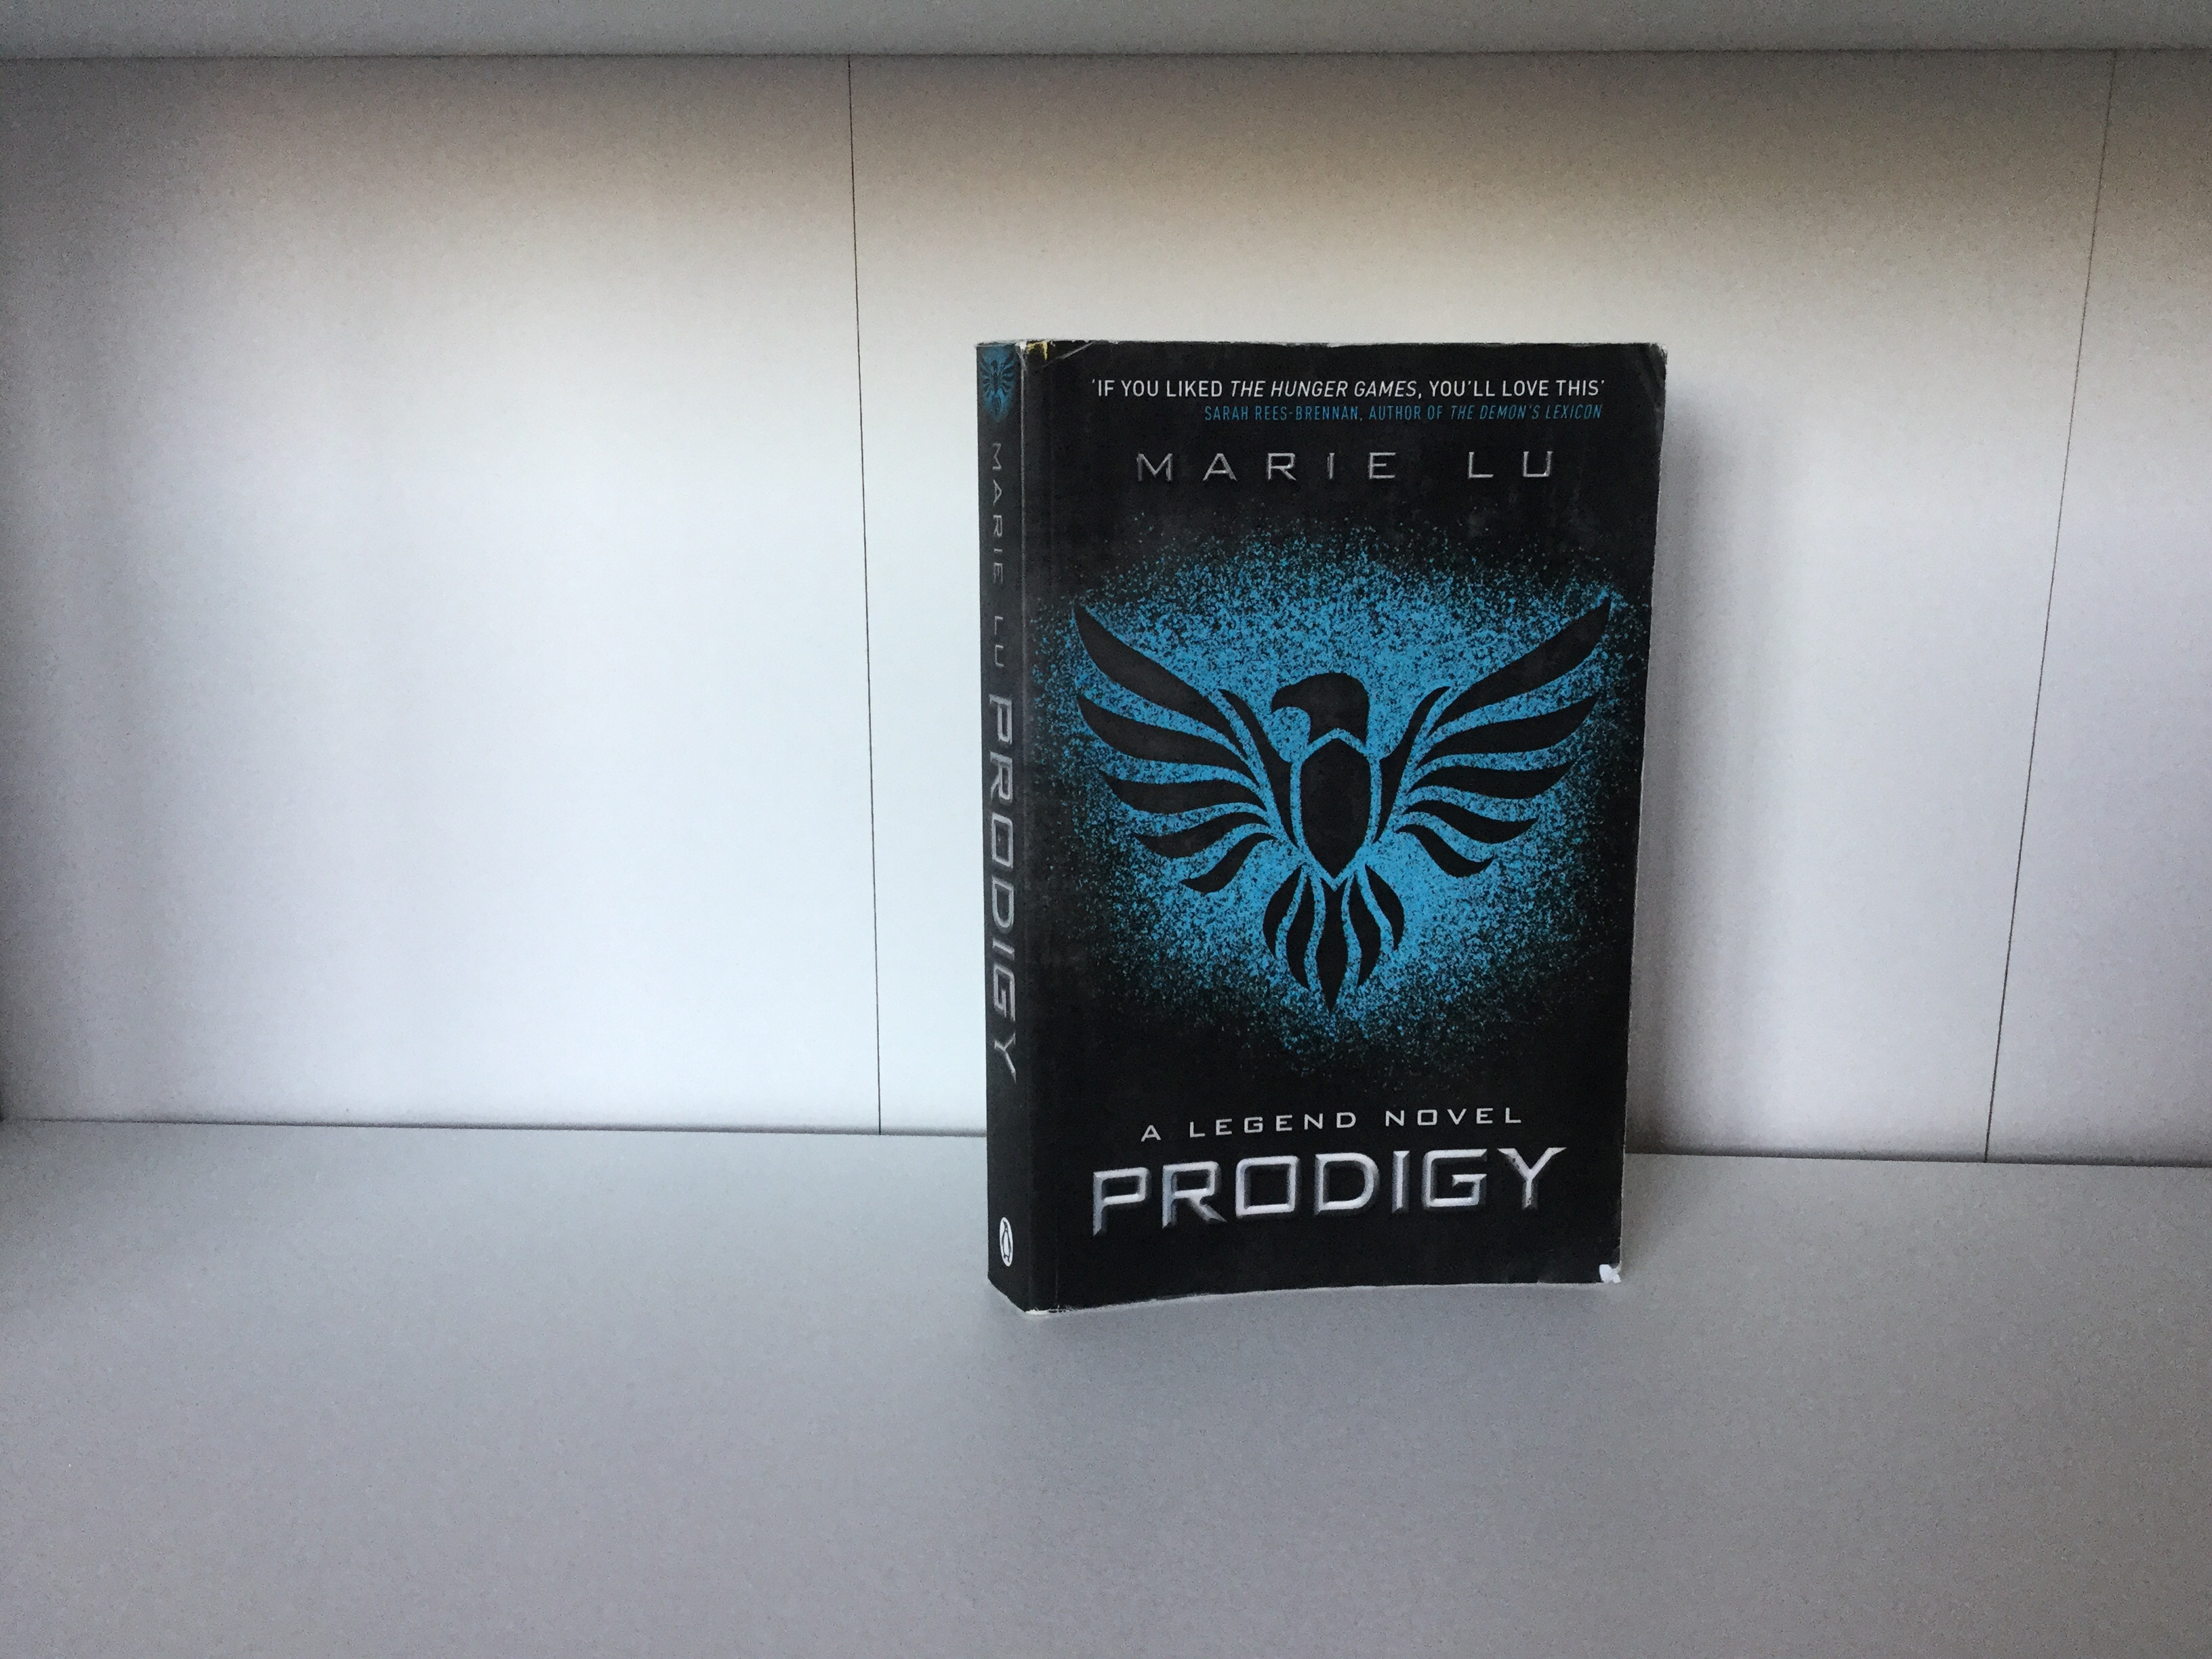 The cover of Prodigy by Marie Lu